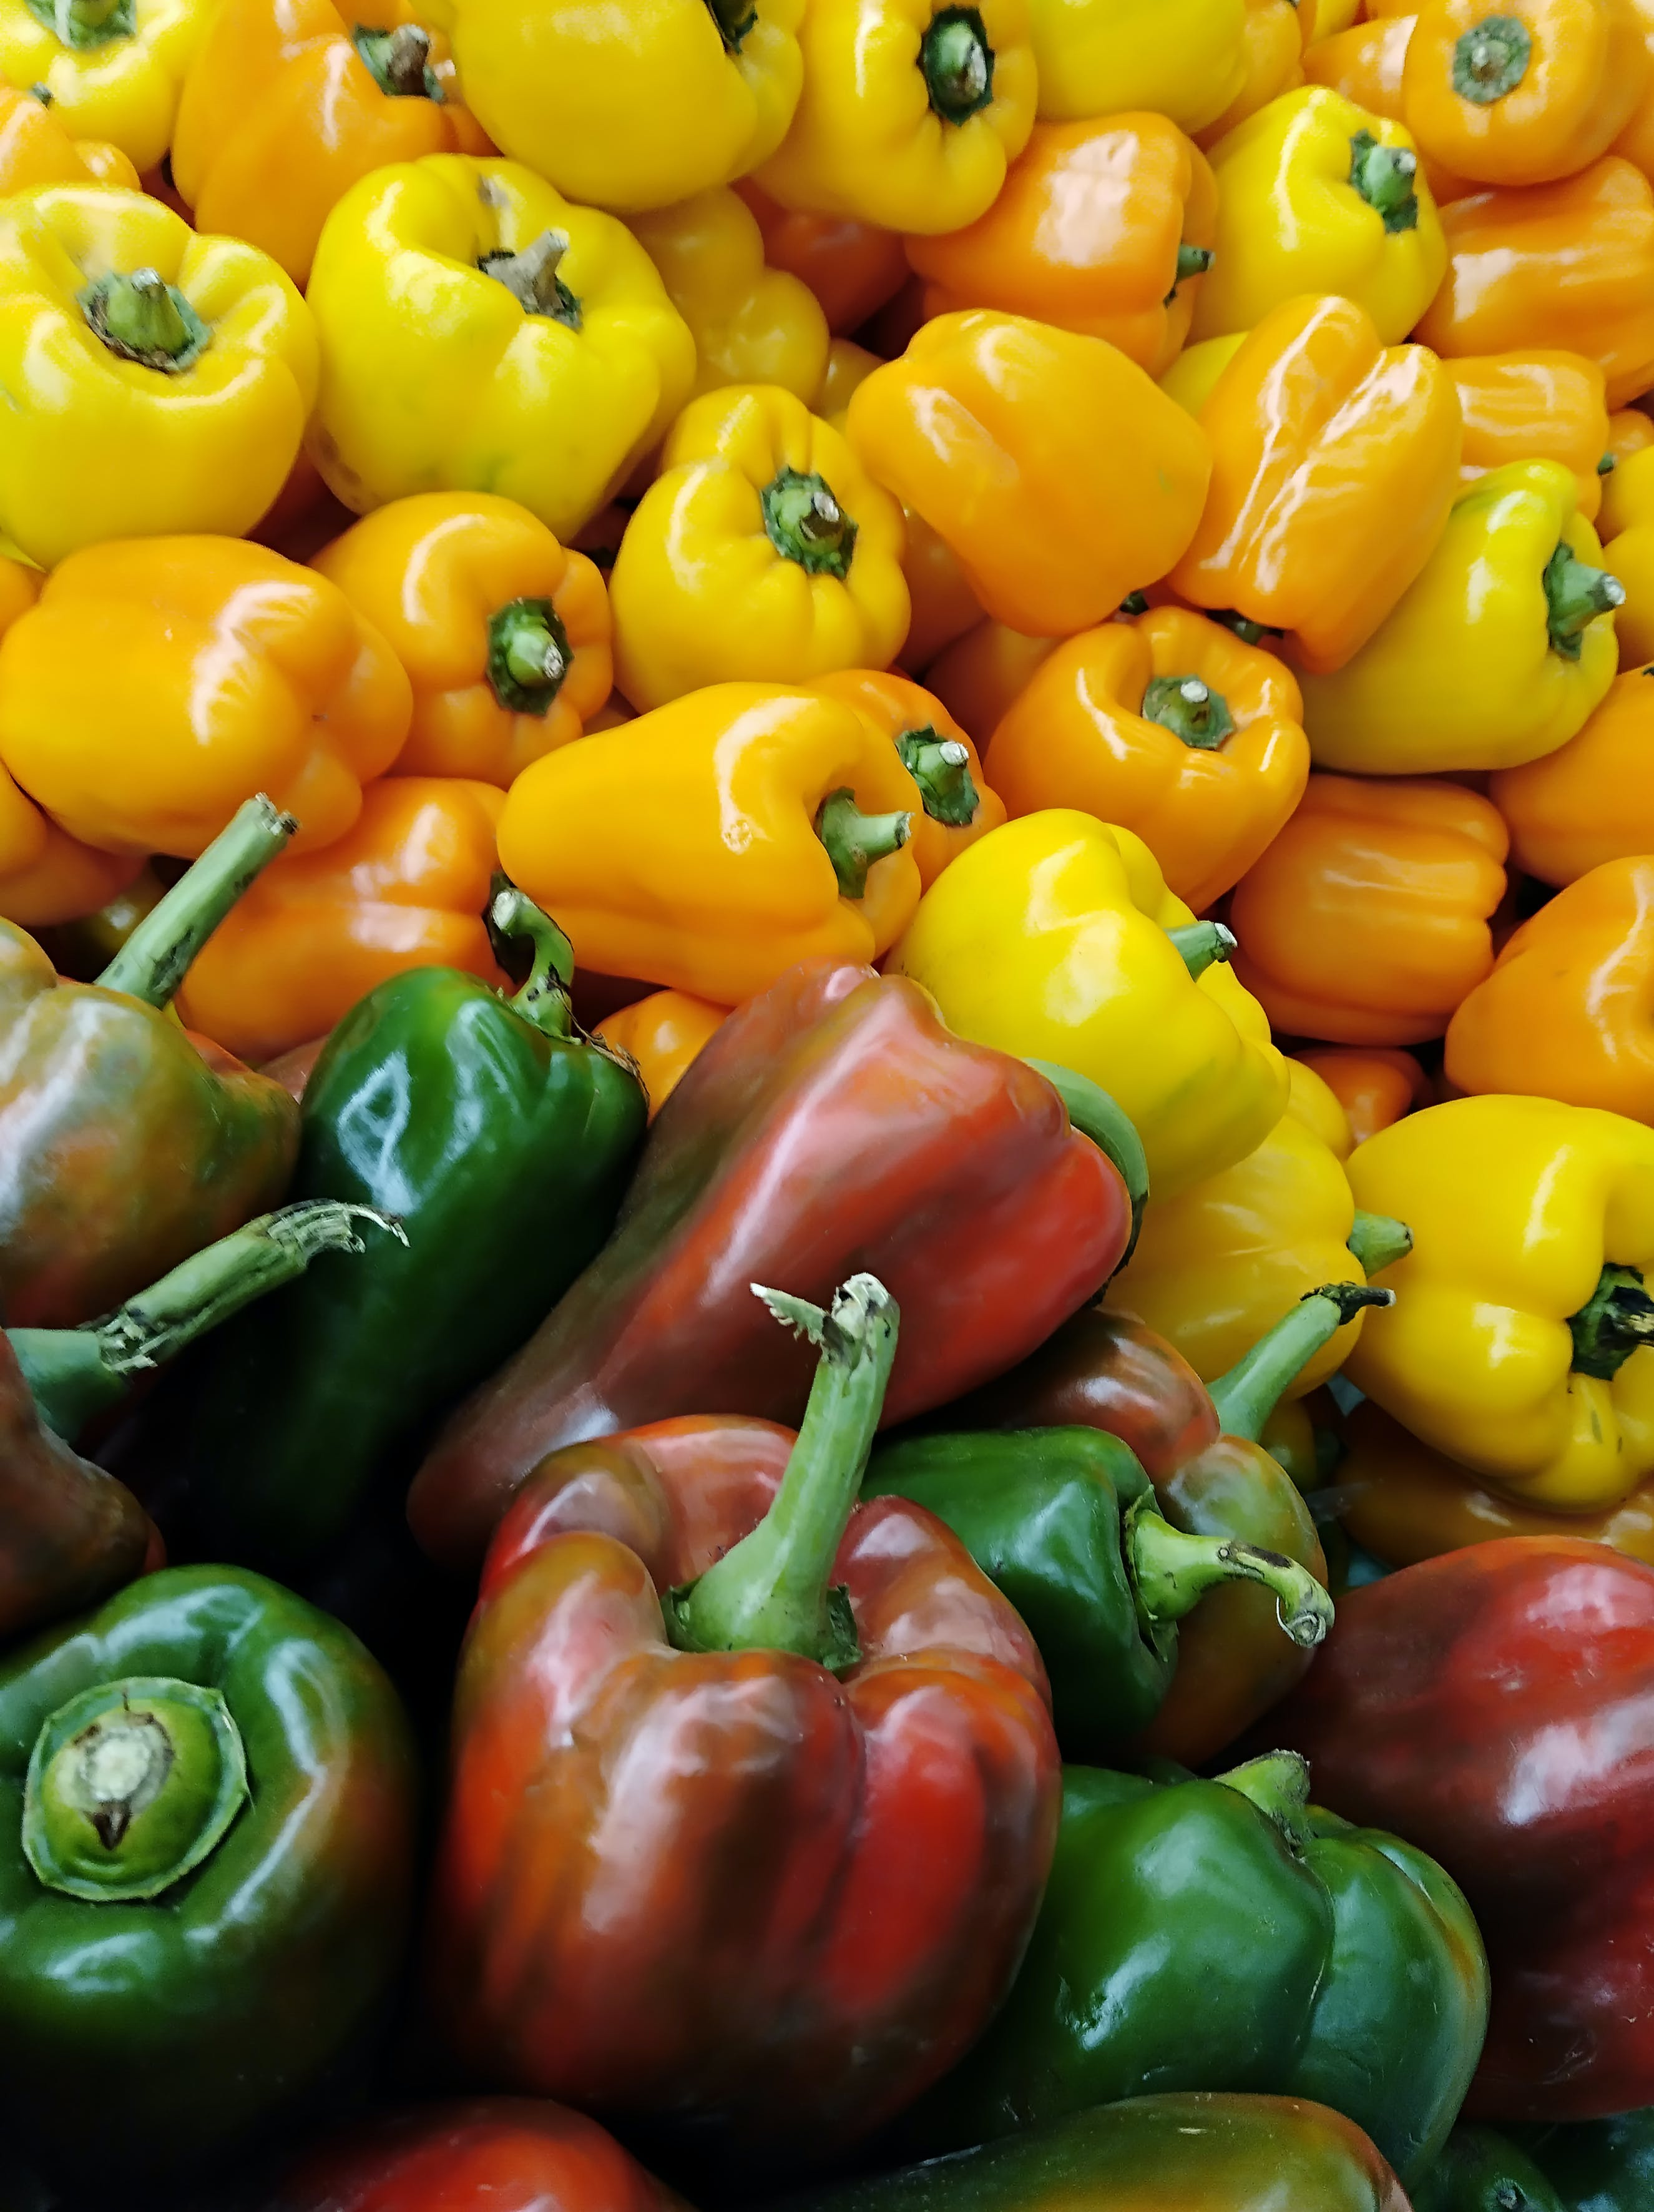 Free stock photo of Amarillo, pimenton, pimientos, rojo